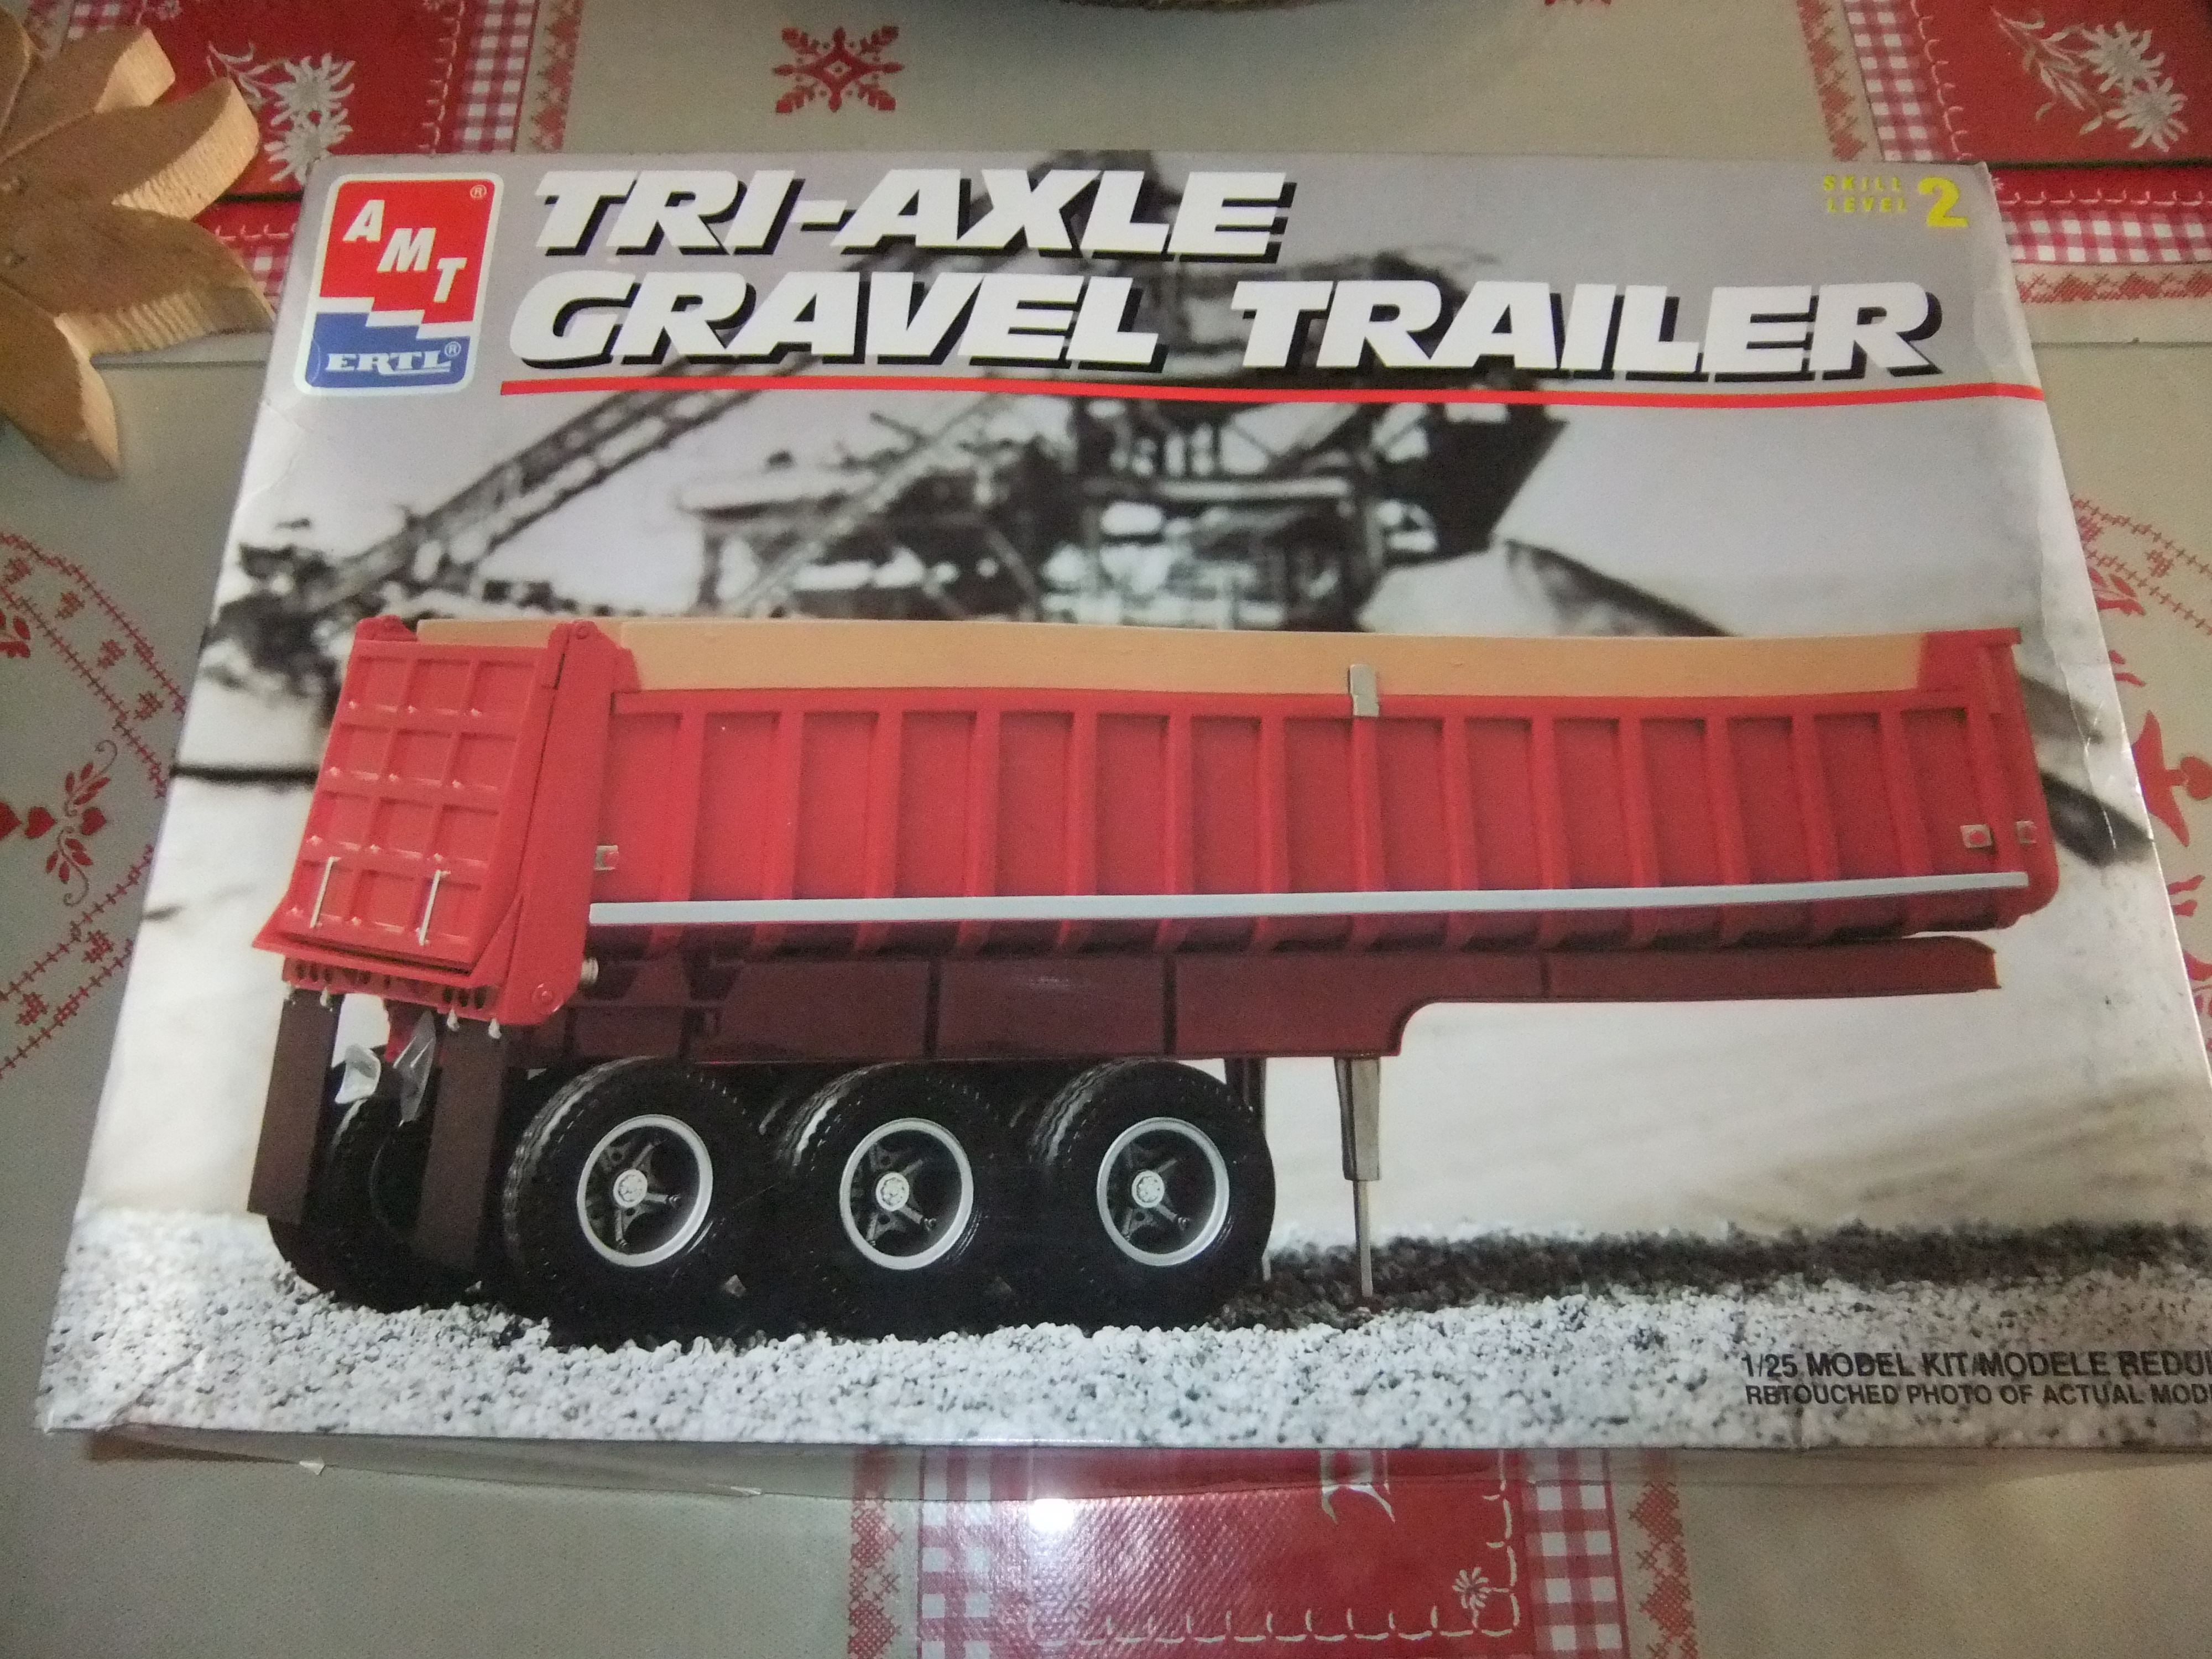 QY1101c additionally Komatsu Pc 490 Lc 10 Track Excavator Universal Hobbies Limited Uhl8090 furthermore Collectiontdwn Toy Trucks With Trailers together with 1 14 Lr Scheinwerfer Led 2 500907144 En furthermore Gallery. on rc dump trucks with trailers